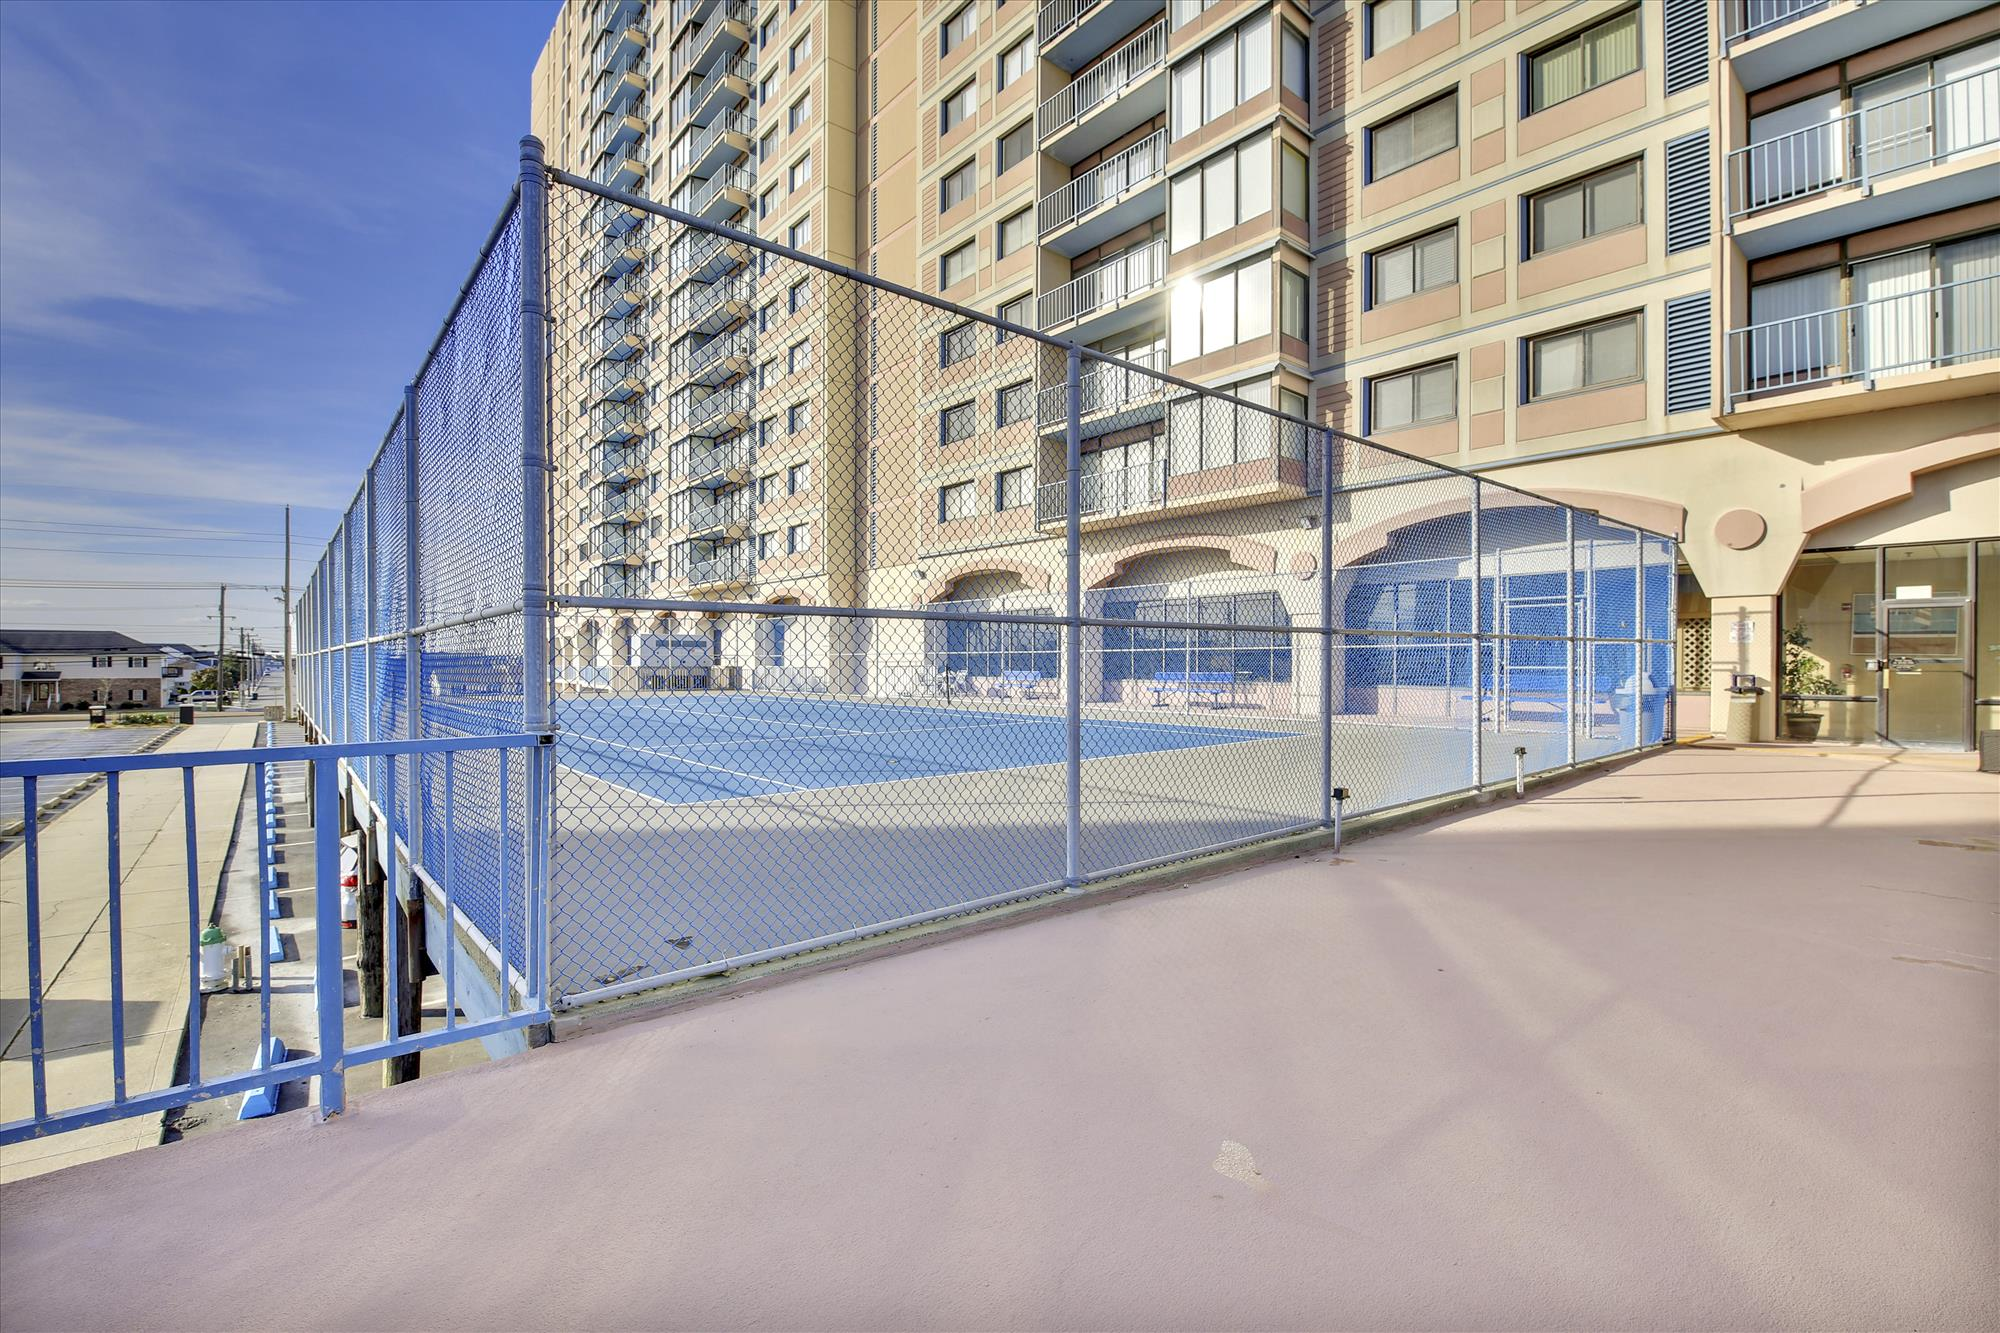 Amenity,Capri Tennis Court,